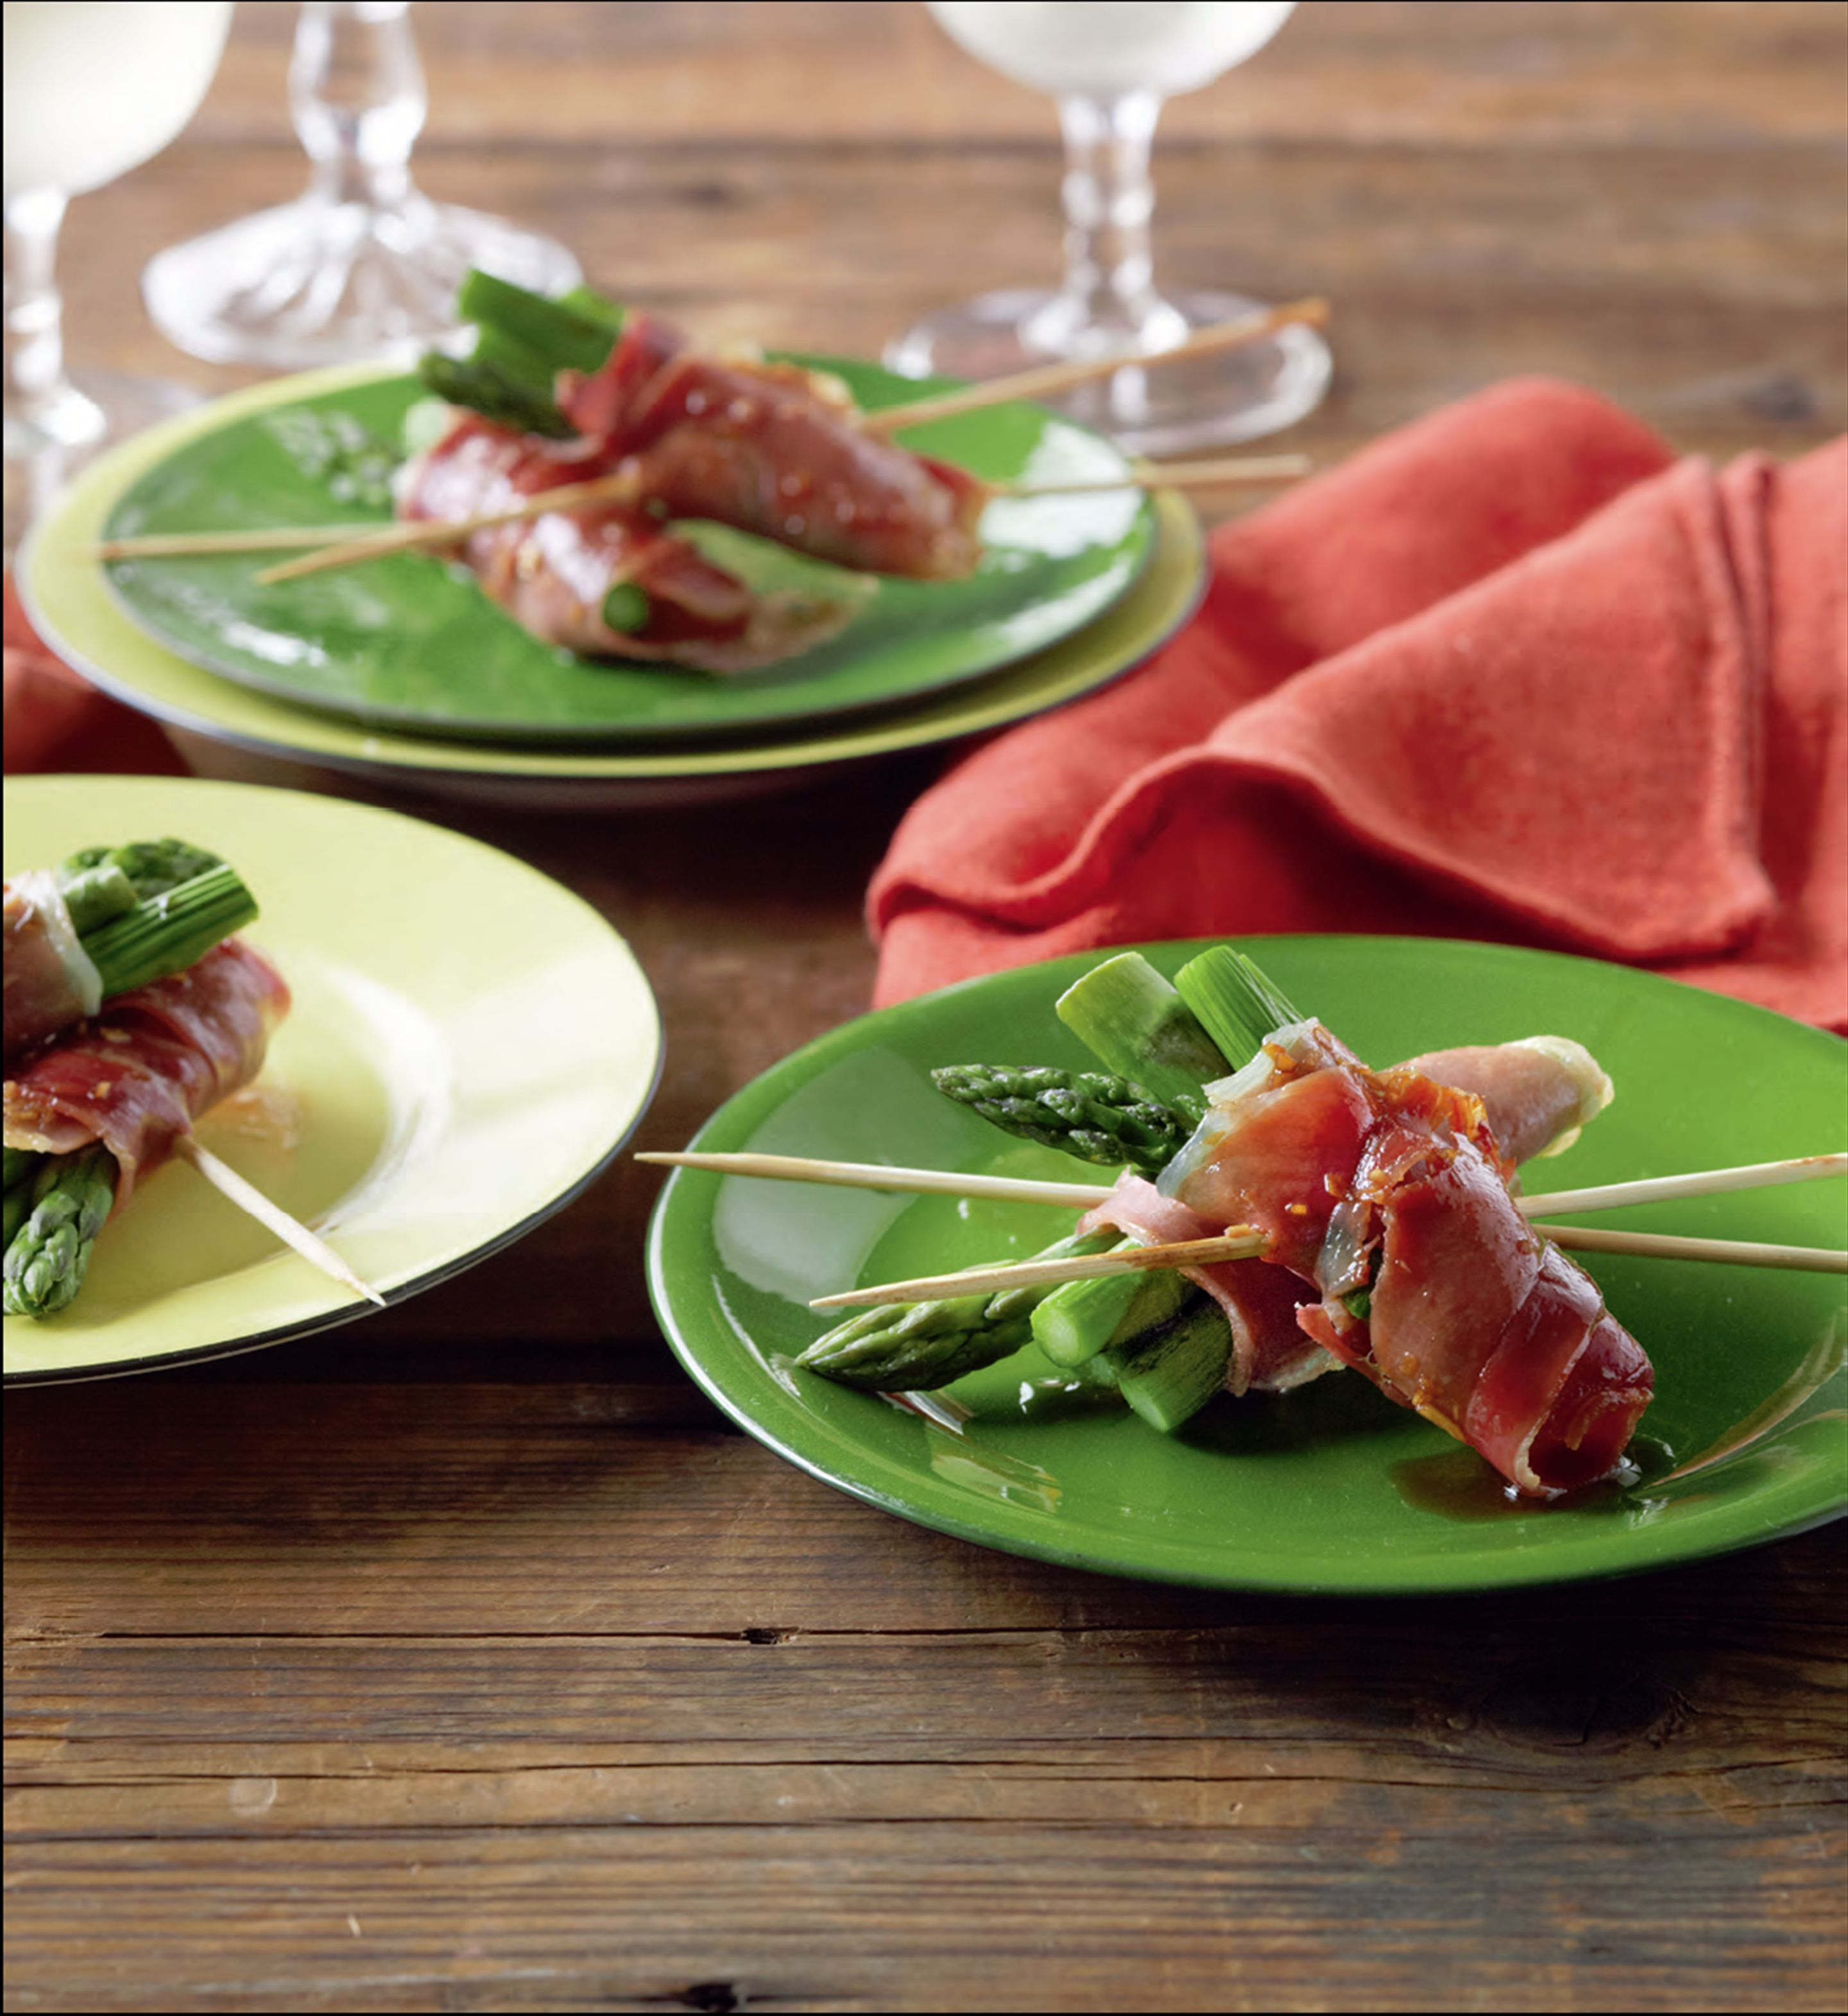 Prosciutto and asparagus skewers